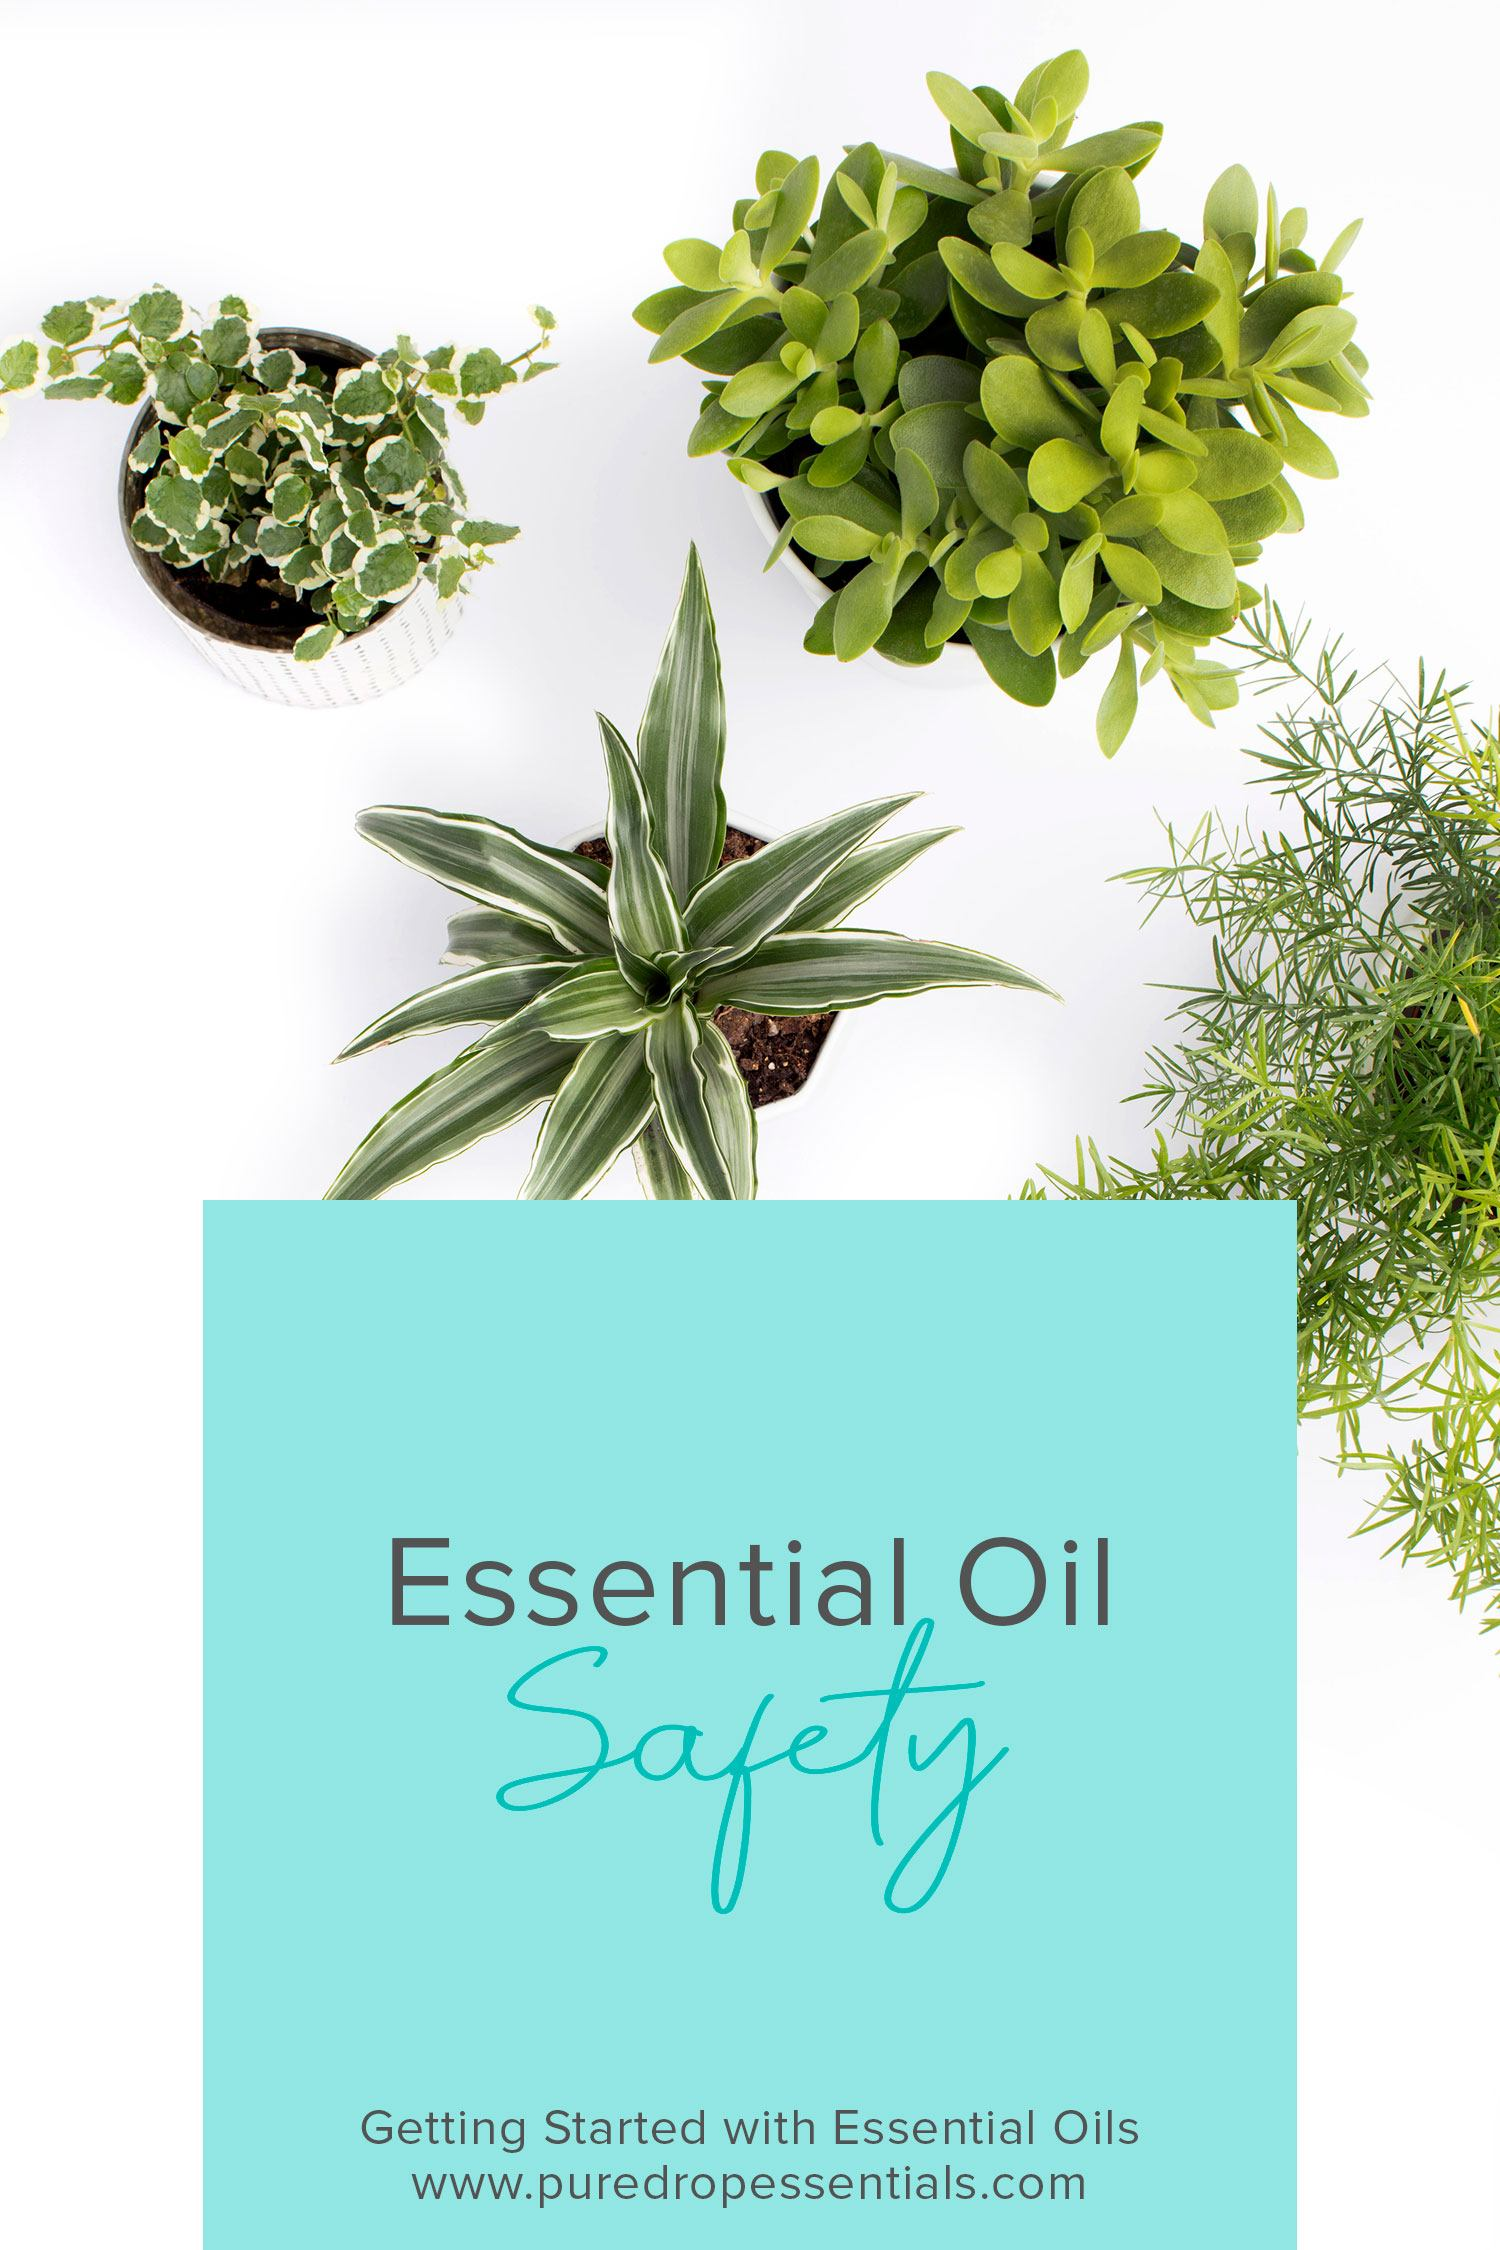 Although essential oils are safe to use, as with anything, too much of a good things can be bad. Click through to find out about the precautions to take when using essential oils to ensure the safe use for your family ! www.puredropessentials.com